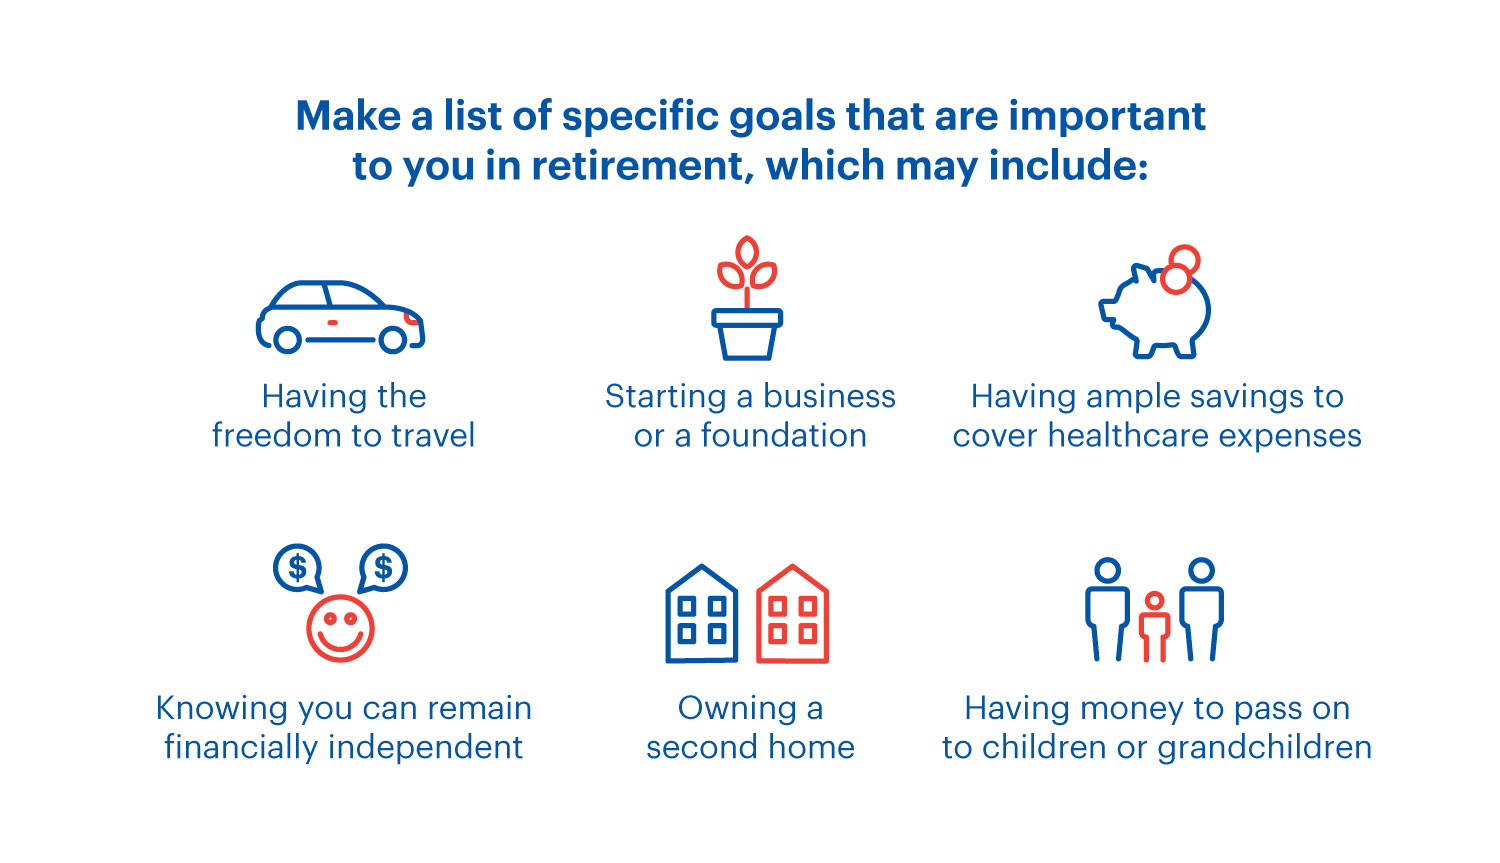 An infographic explaining good goals to have for retirement.